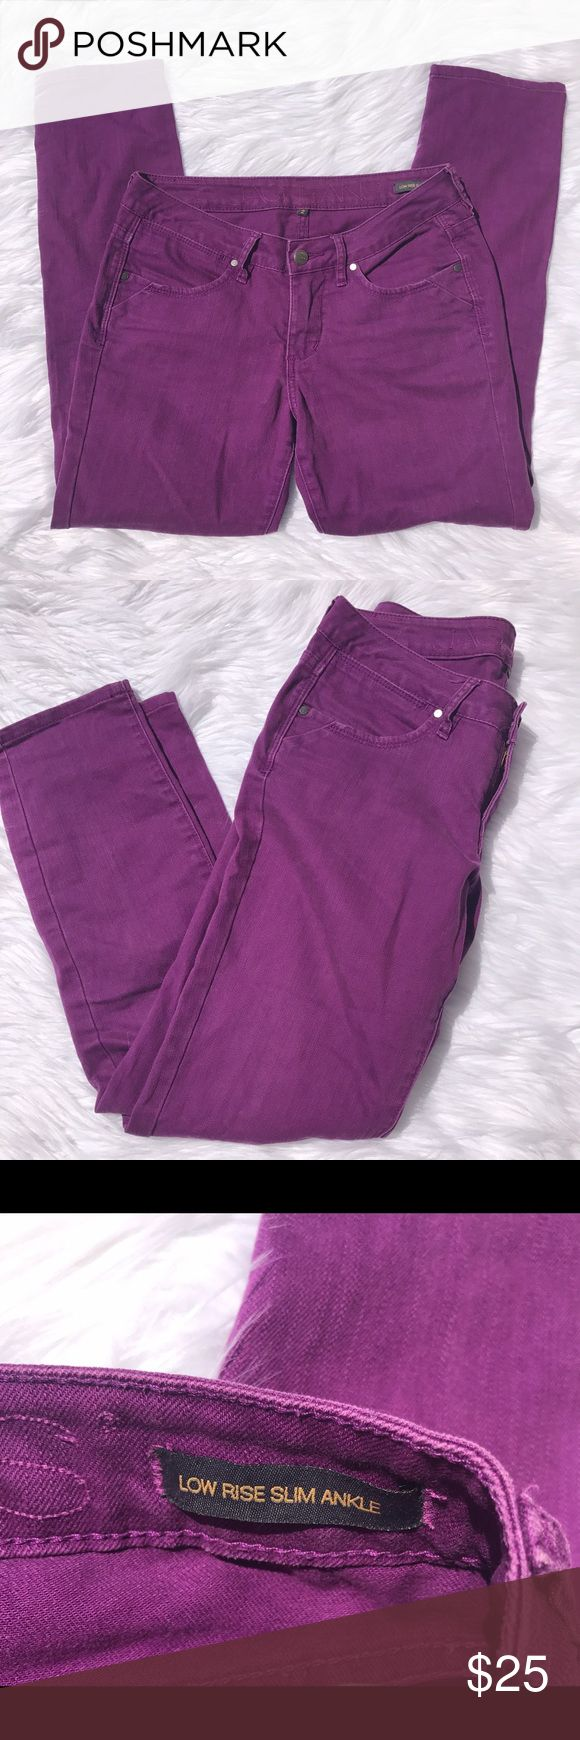 """JAG Jeans  Low Rise Slim Ankle Purple Jeans Sz 2 Jag Jeans  Low Rise Slim Ankle Purple Womens Jeans Size 2   Gently used, please see photos for details!  Waist laying flat -- 14"""" Inseam -- 27"""" Outseam -- 36.5"""" Jag Jeans Jeans Ankle & Cropped"""